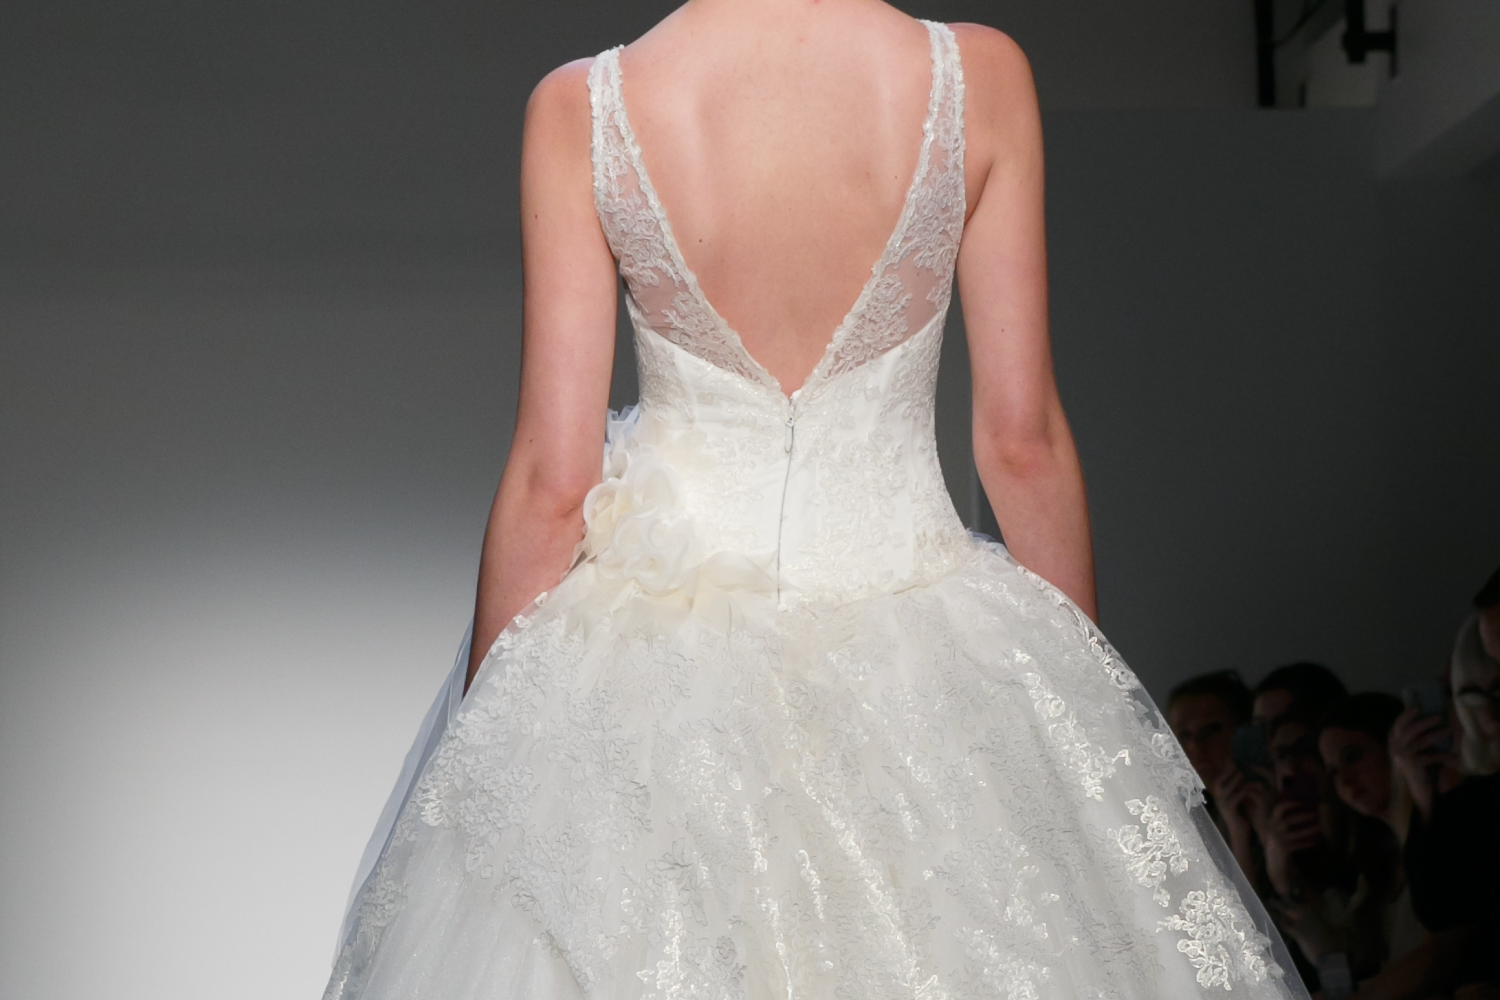 Fall-2013-wedding-dresses-with-statement-backs-4.original